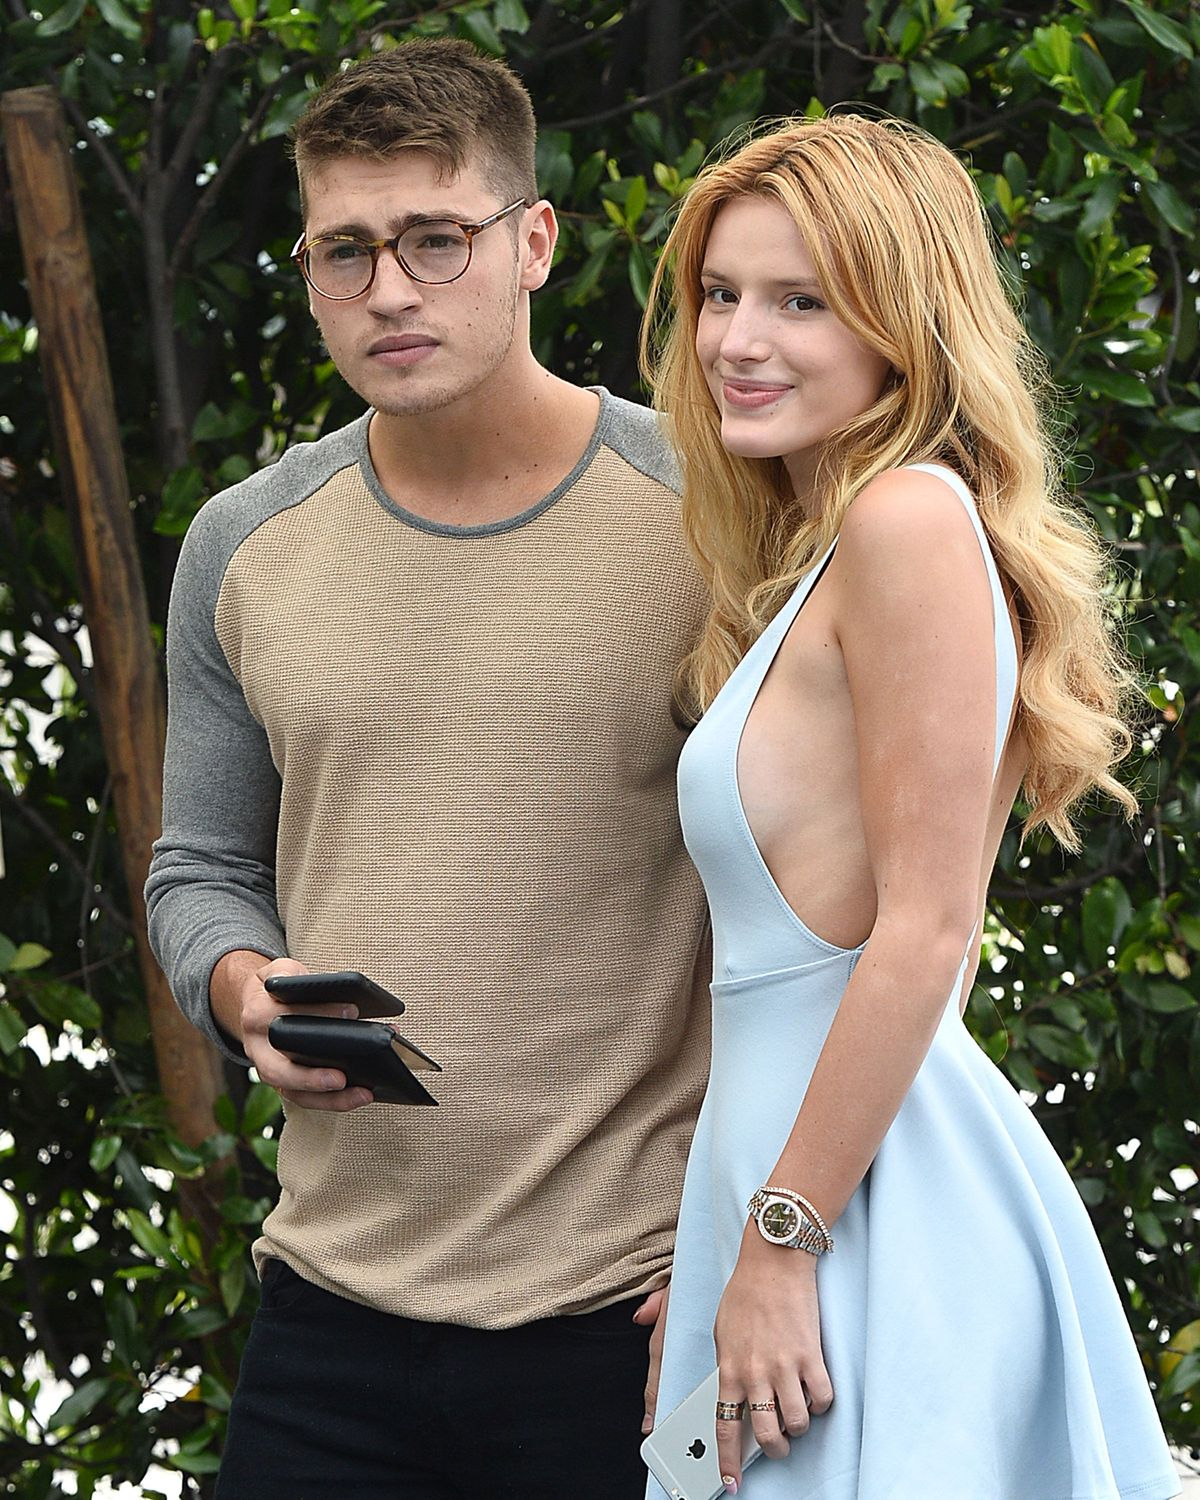 Bella Thorne Braless 5 TheFappening.nu